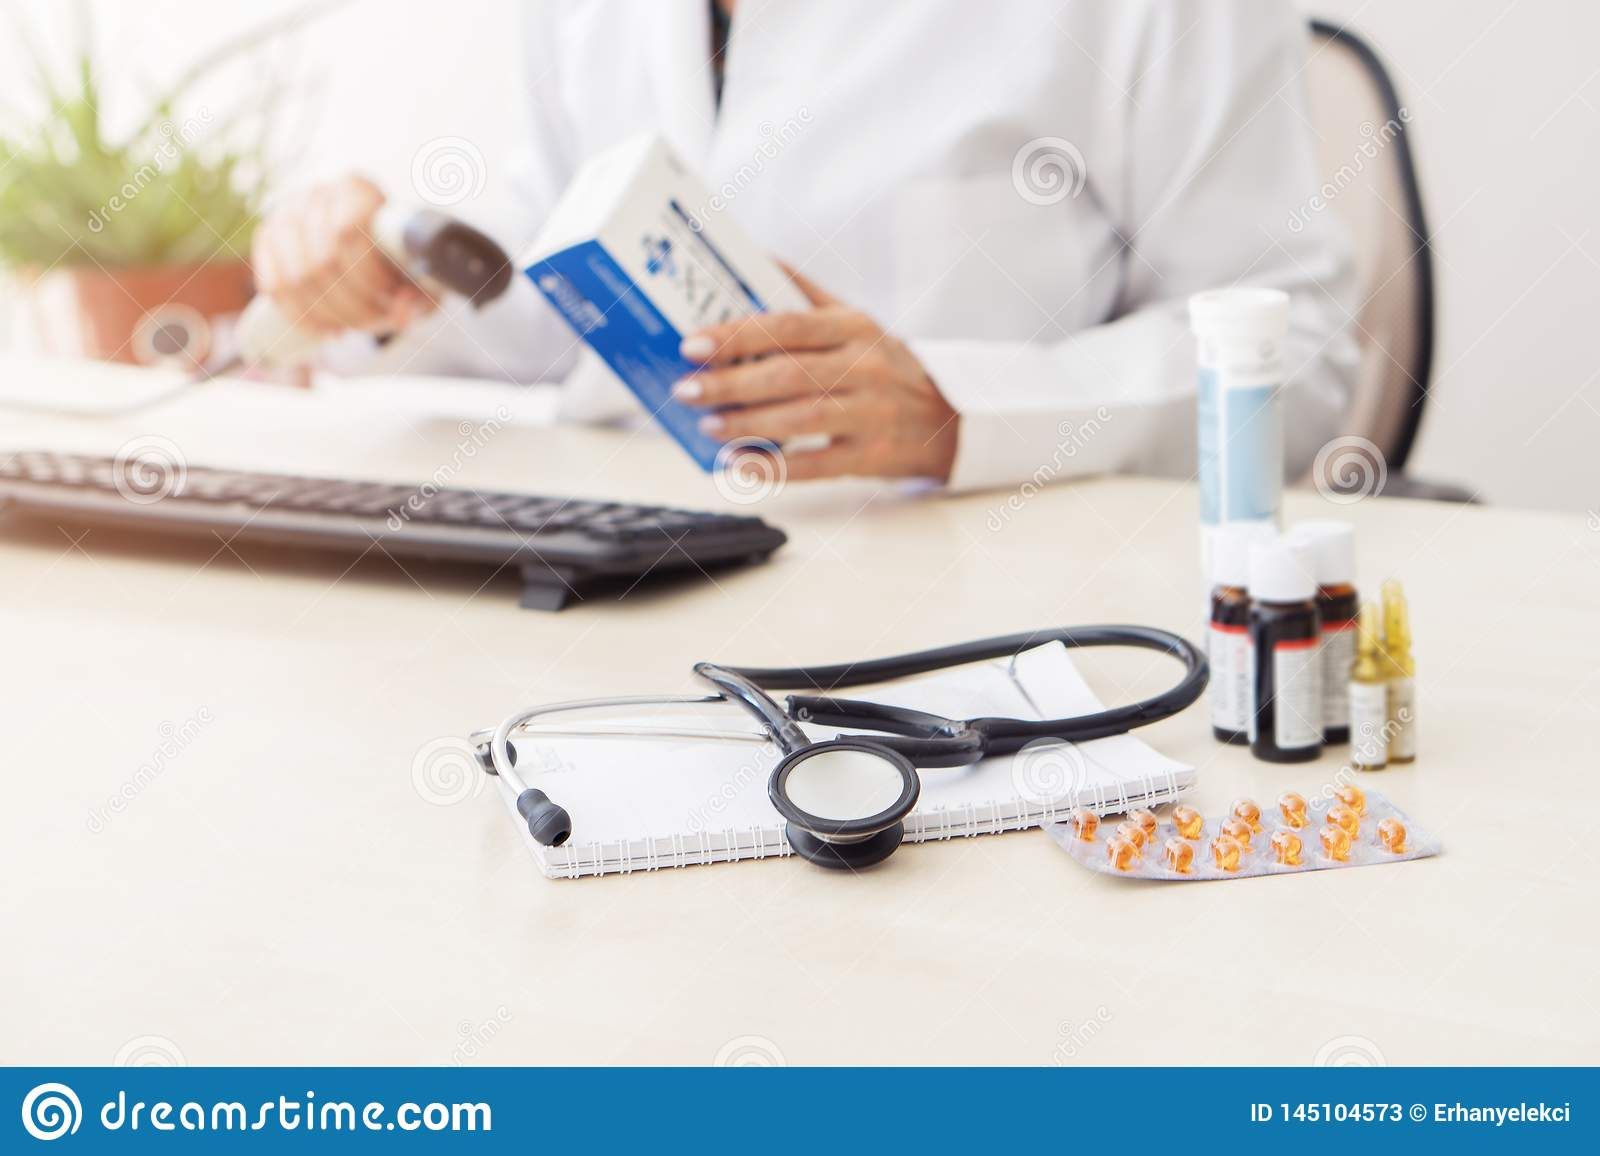 Female doctor entering medication information into computer, there are various drugs on table